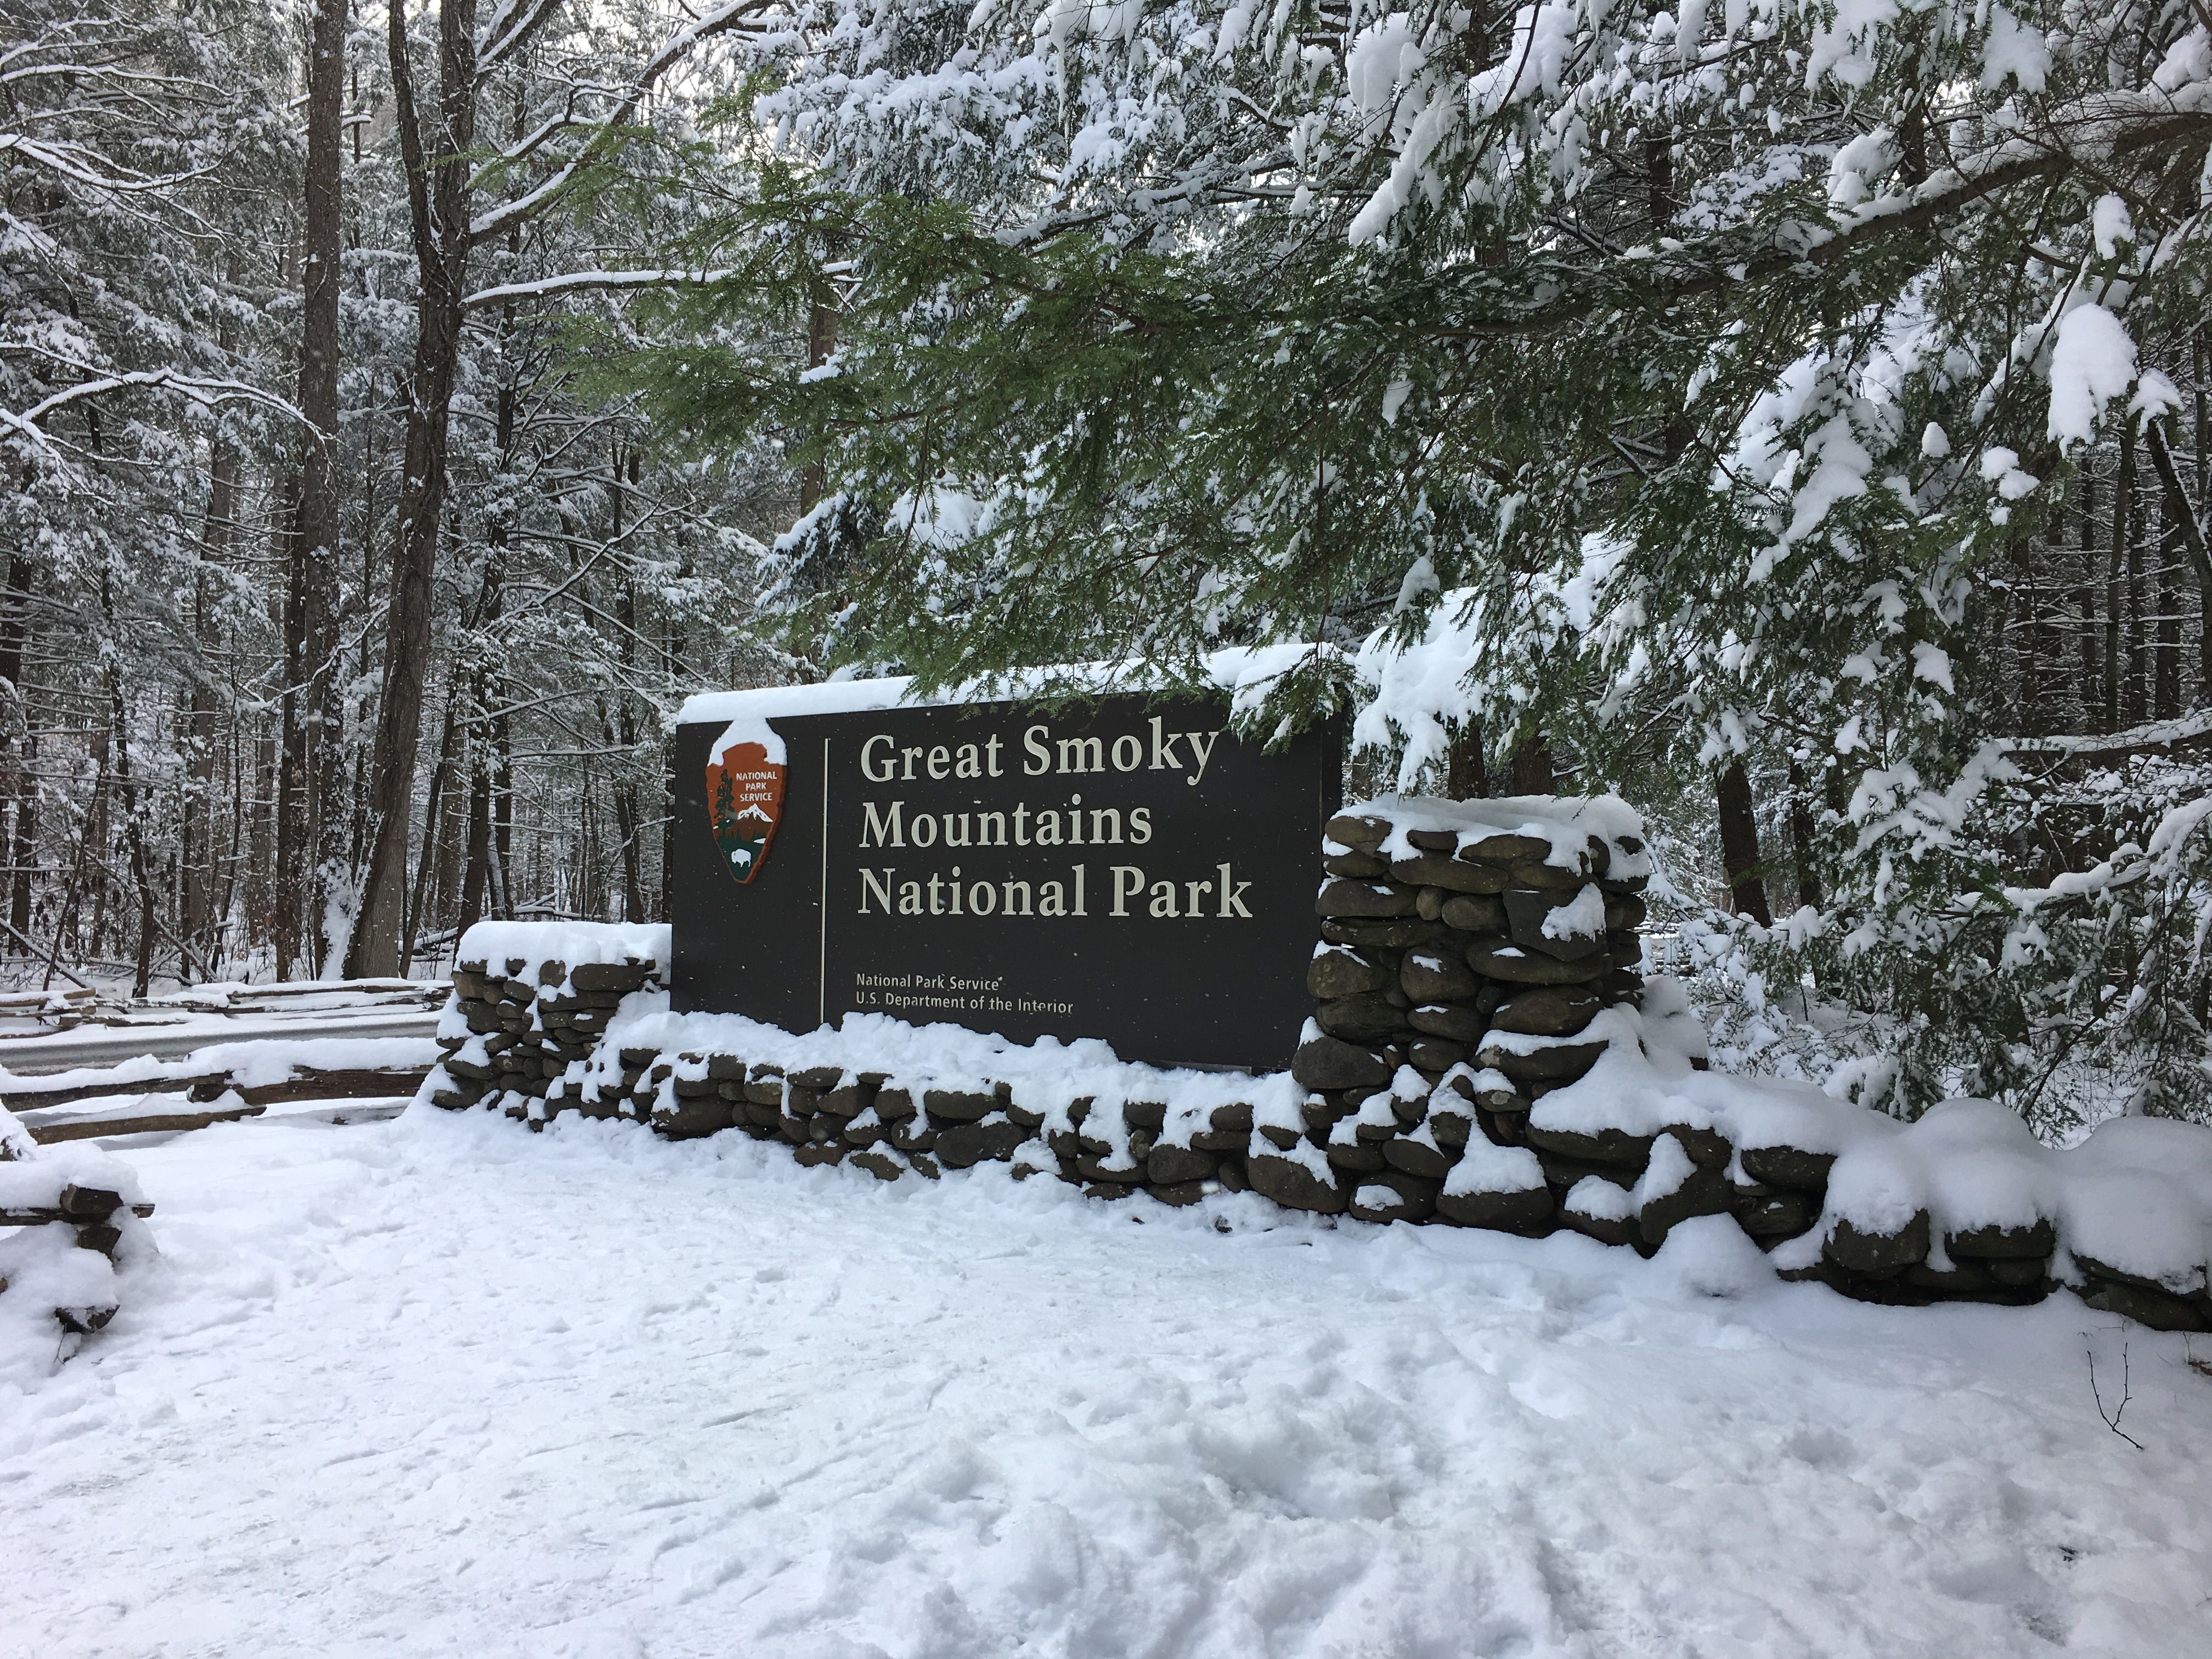 Welcome sign in Hwy 441 in the Smoky Mountain national park at the Sugarlands entrance.